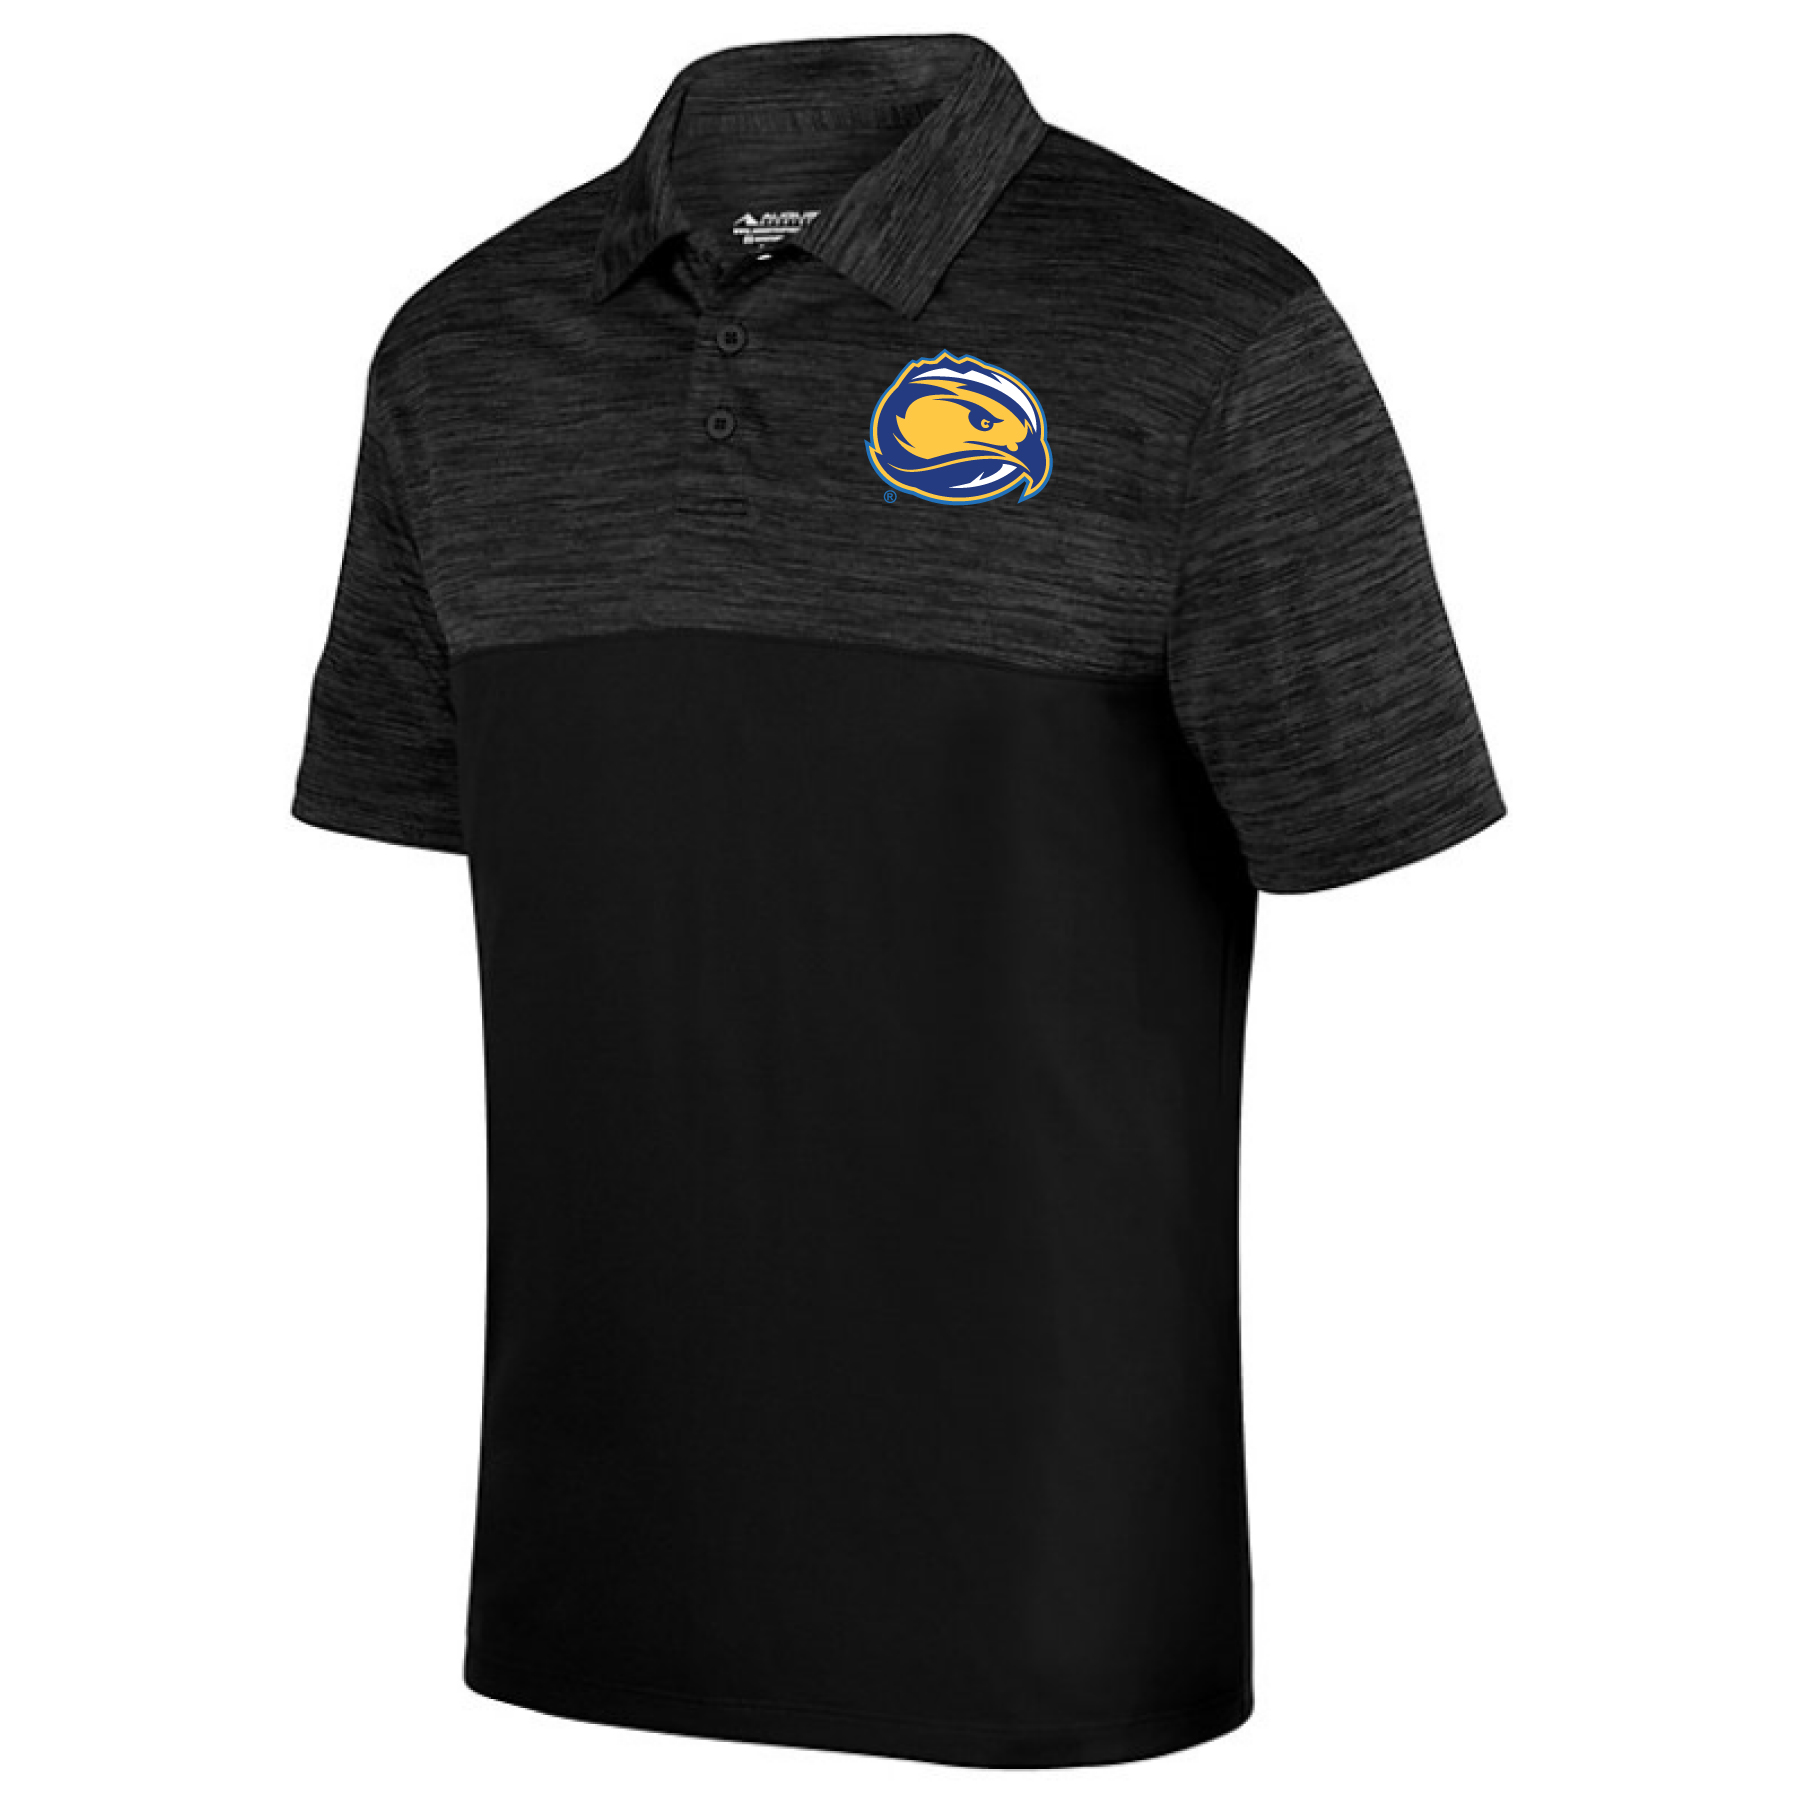 Fort Lewis College Performance S/S Polo